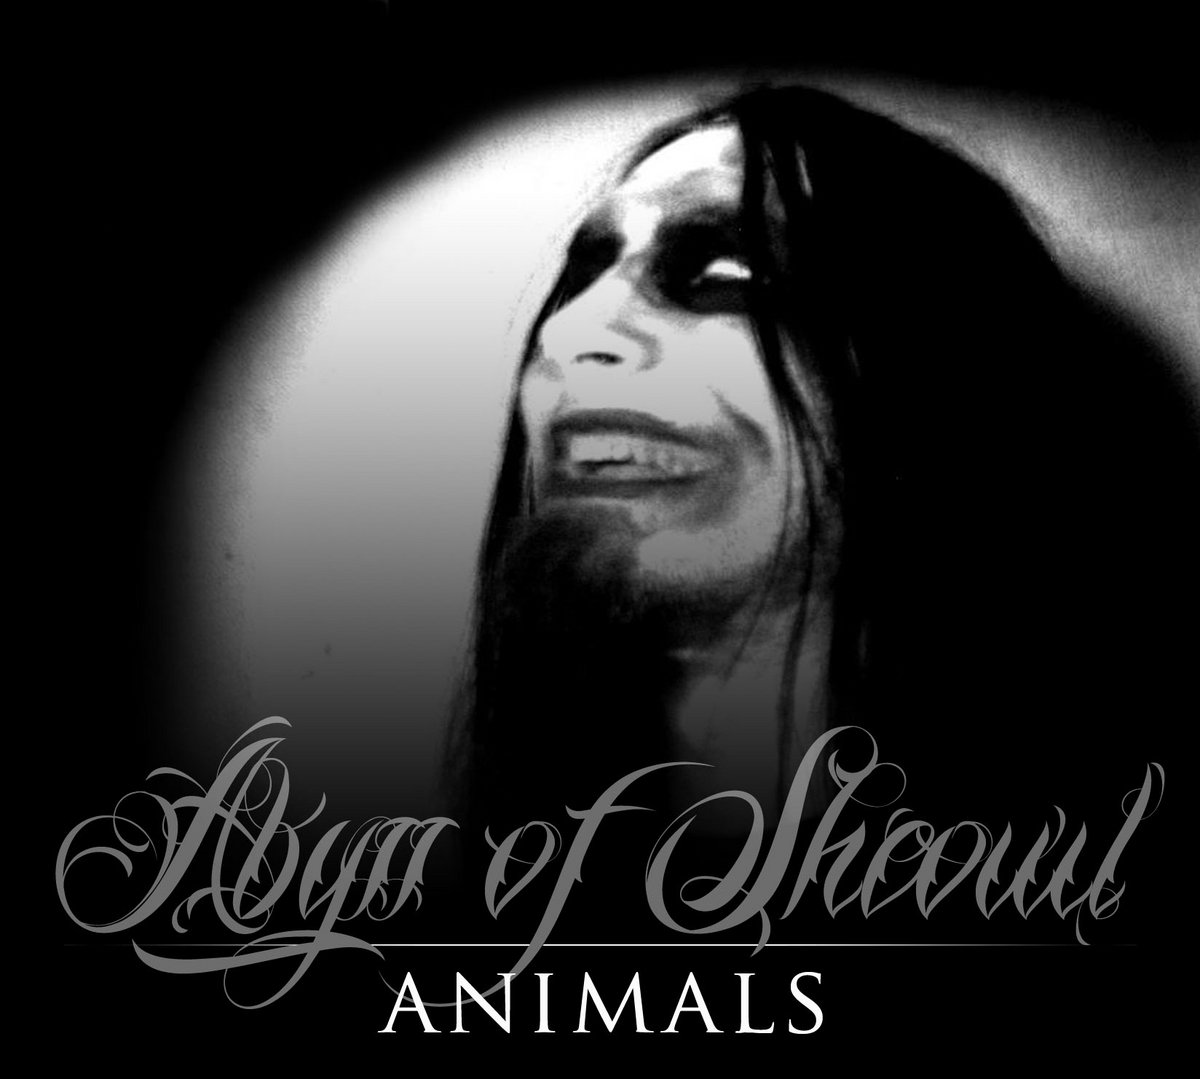 Abyss Of Sheowl - Animals (2014)